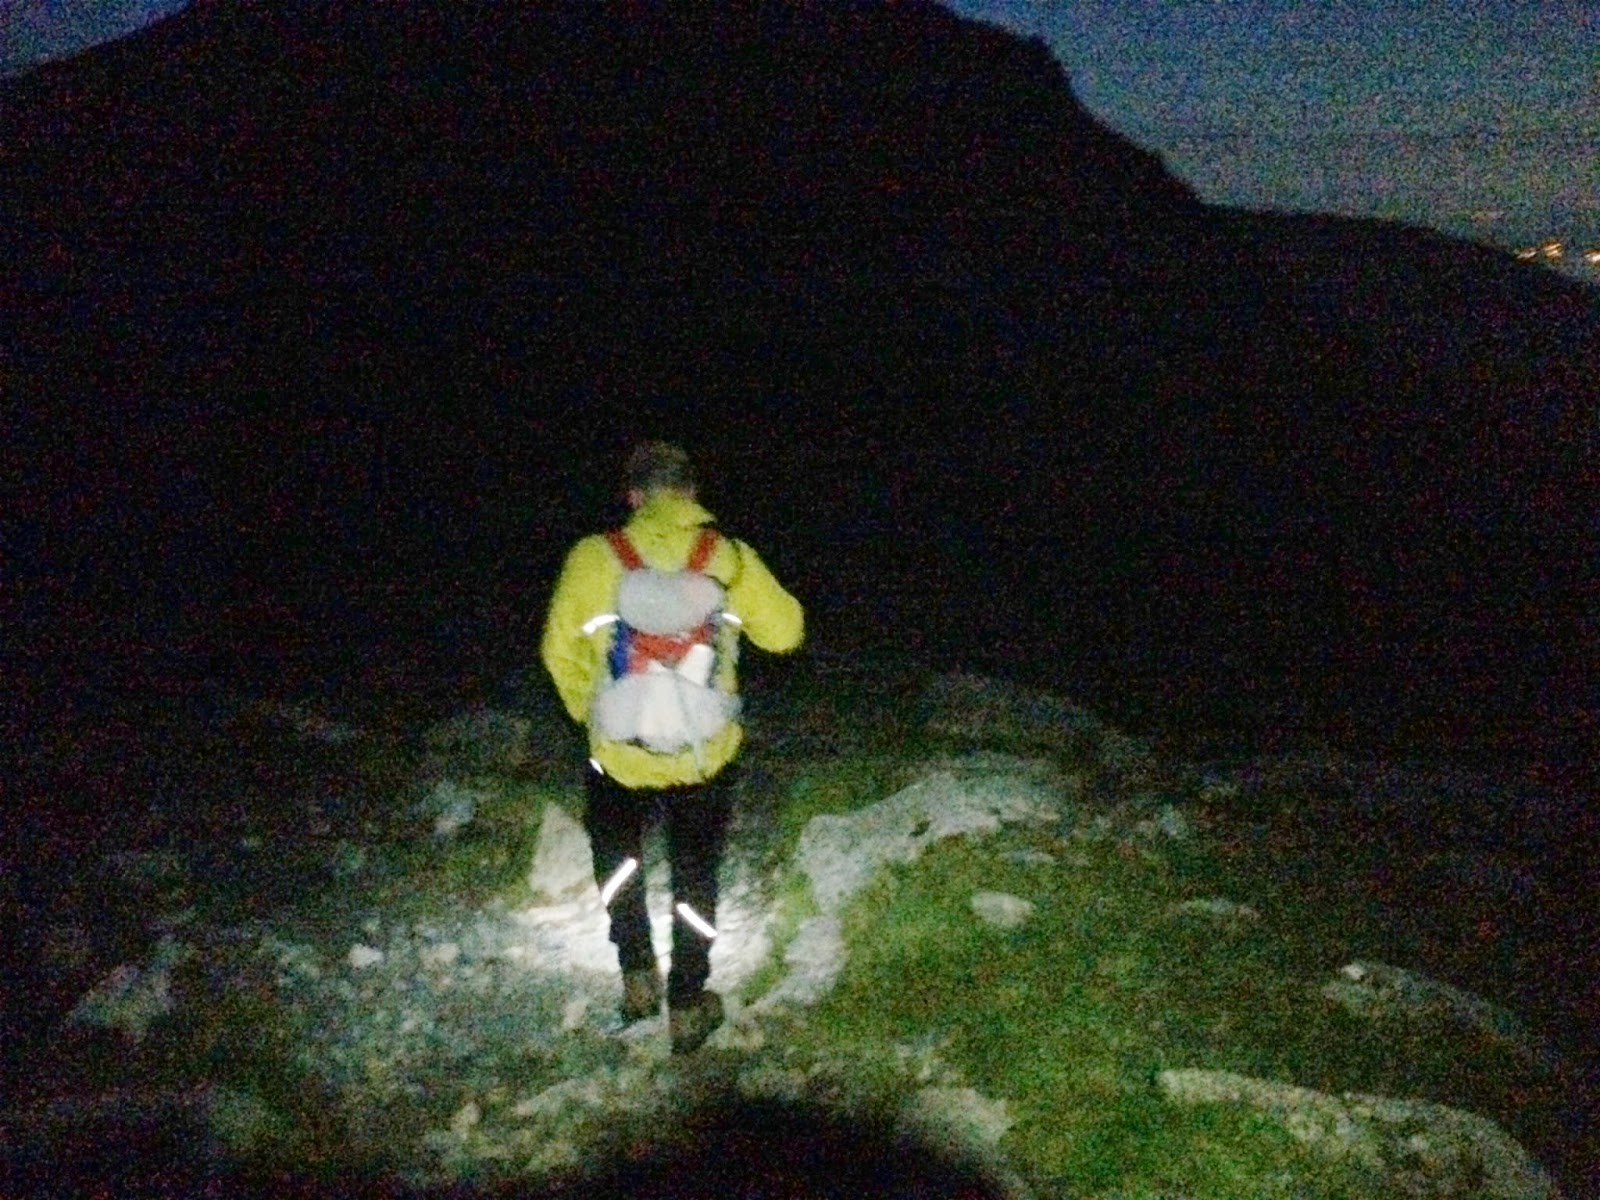 Navigating the terrain in the dark - 24 peaks challenge near Nethermost Pike